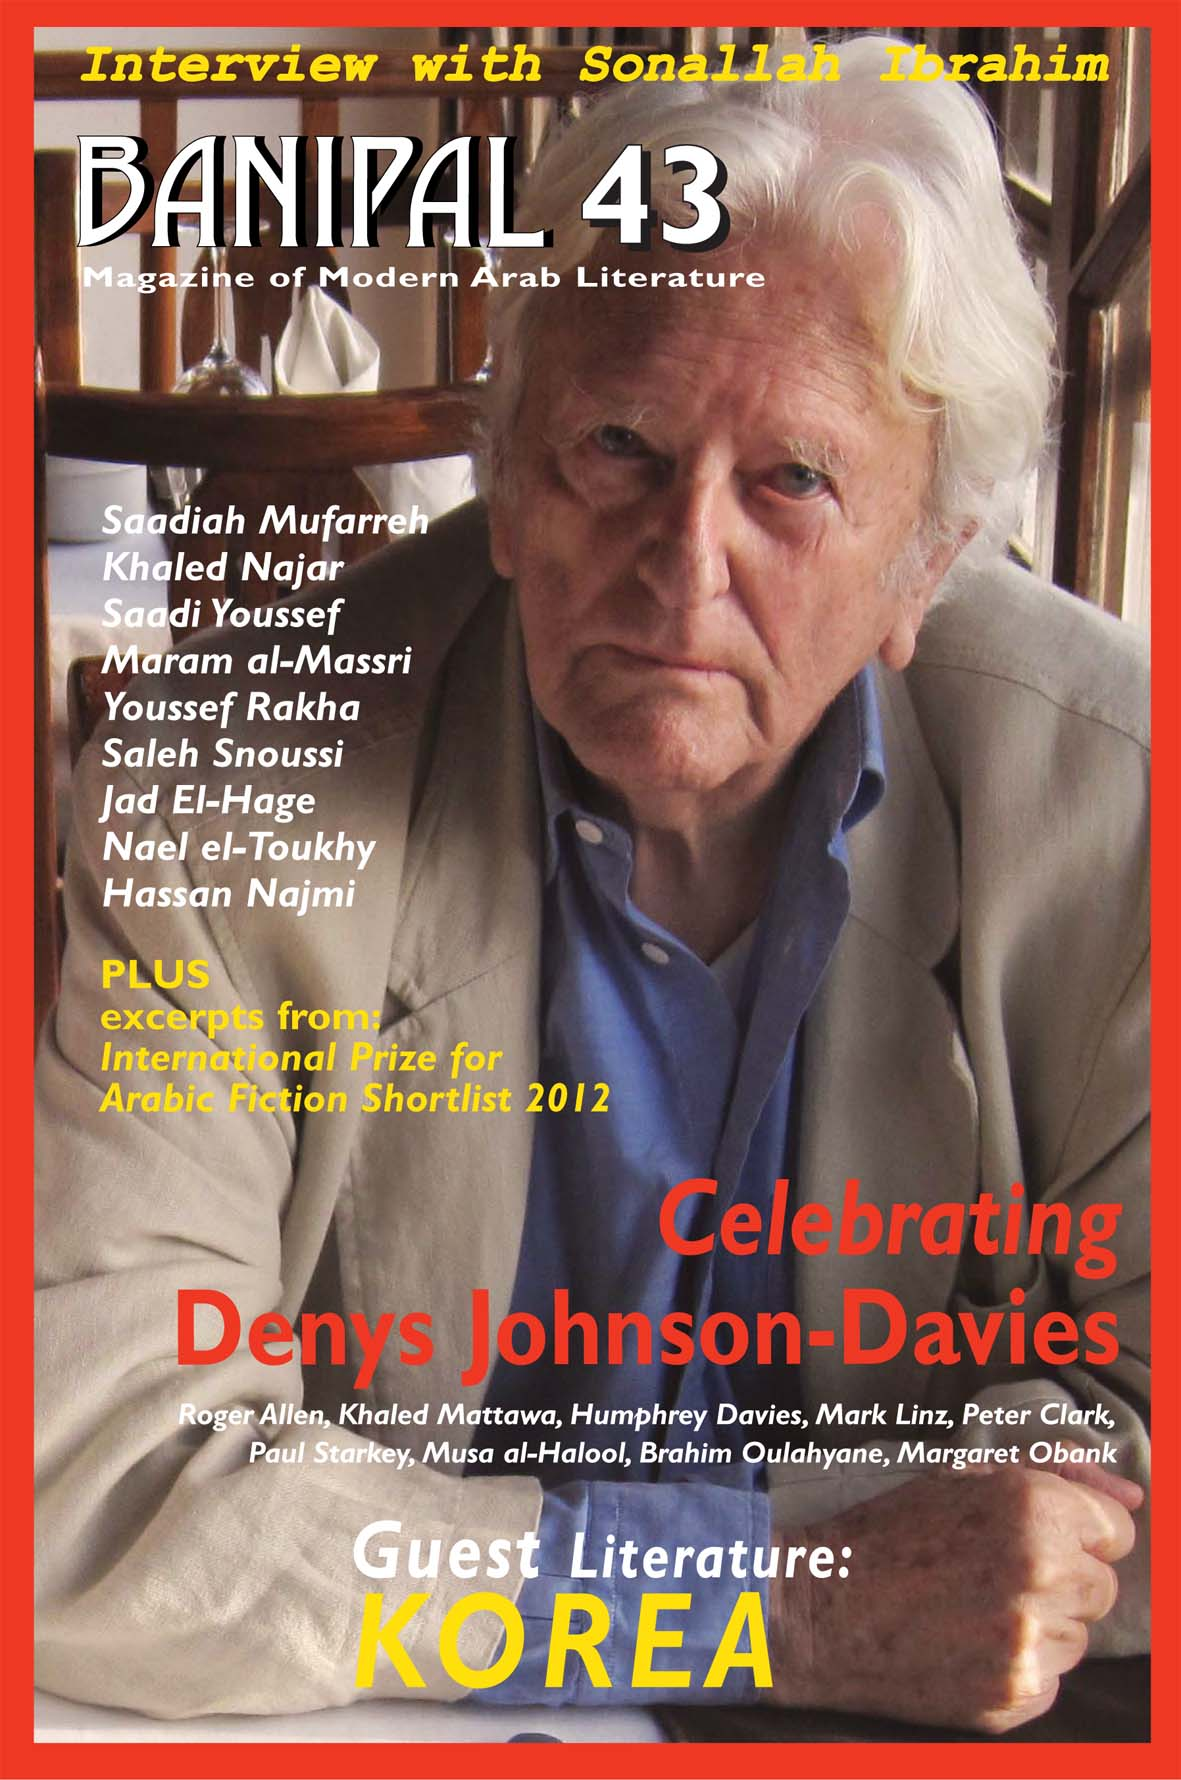 Celebrating Denys Johnson-Davies in Banipal 43 (2012)